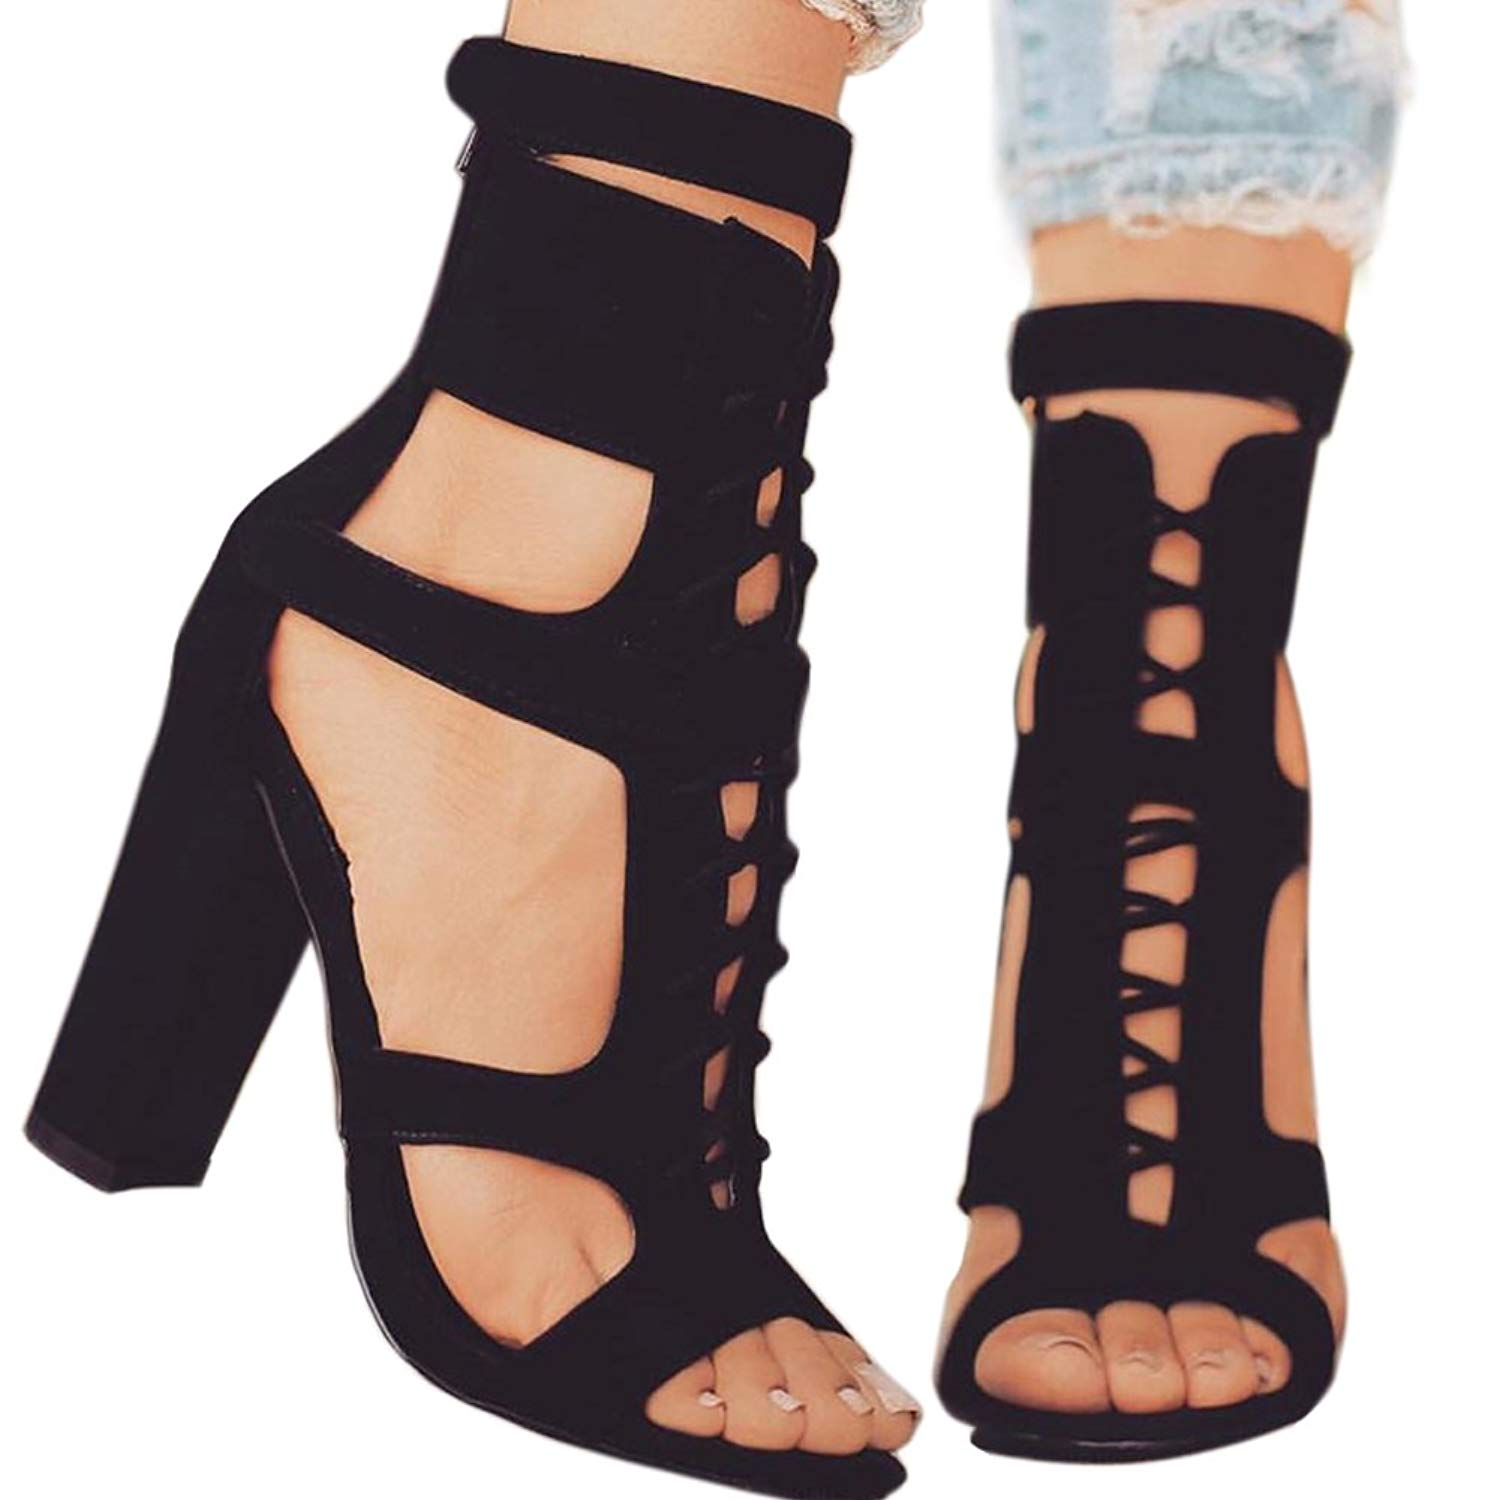 b5ff4314c Get Quotations · Women s Caged Sandals Black Open Toe Chunky Stacked Heels  Strappy Lady Shoes